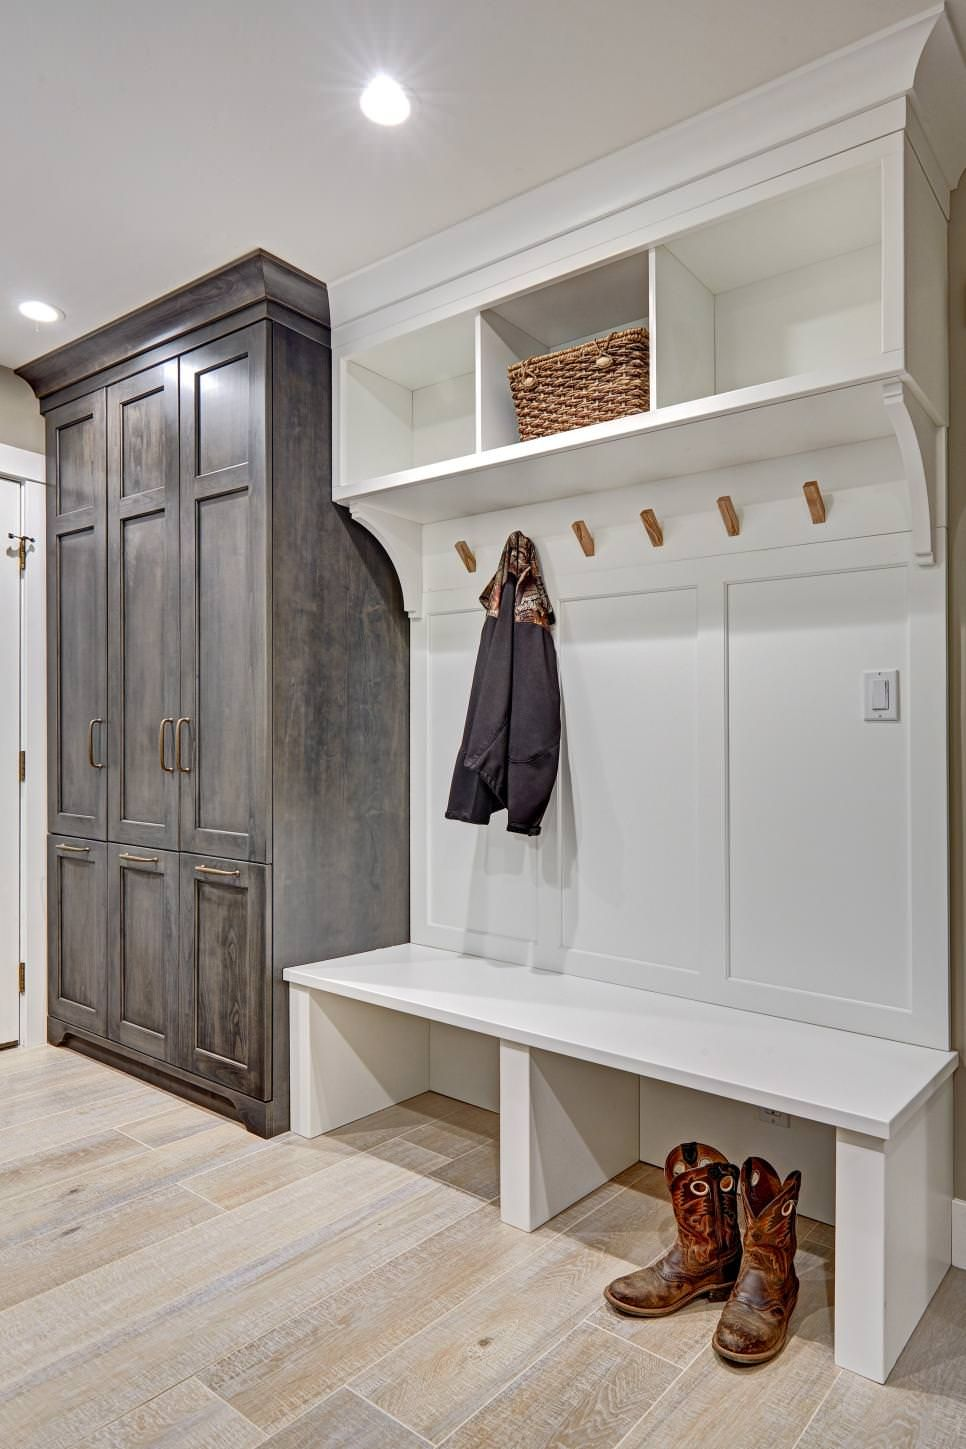 grey rustic kitchen cabinets google search mexico kitchen grey rustic kitchen cabinets google search